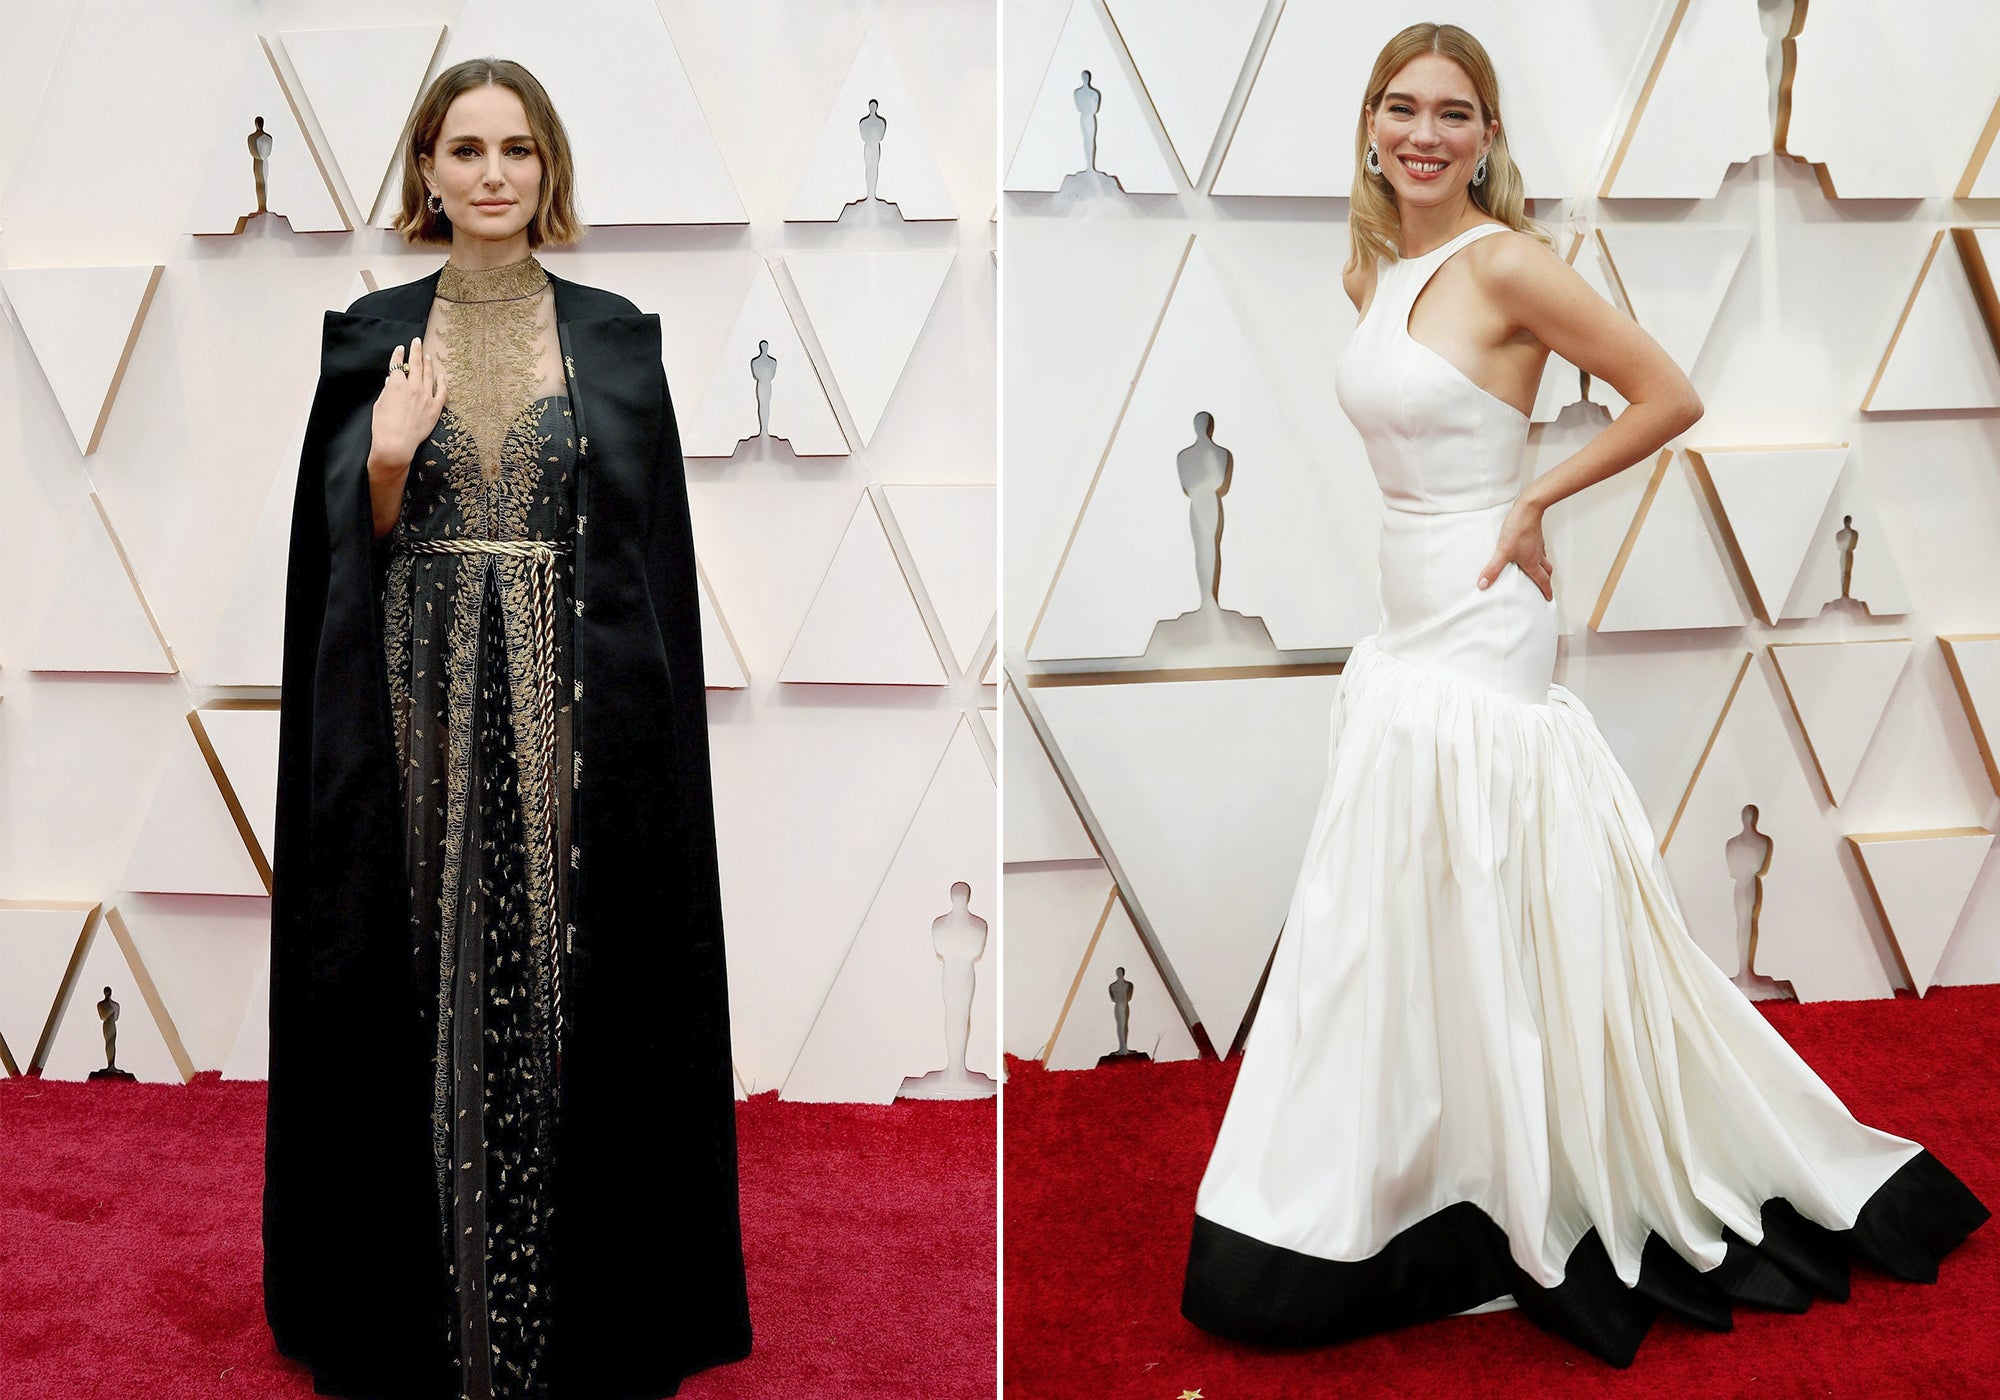 Oscar's 2020: A Night Full of Funny Moments, Fabulous Fashion and Crucial Social Messages